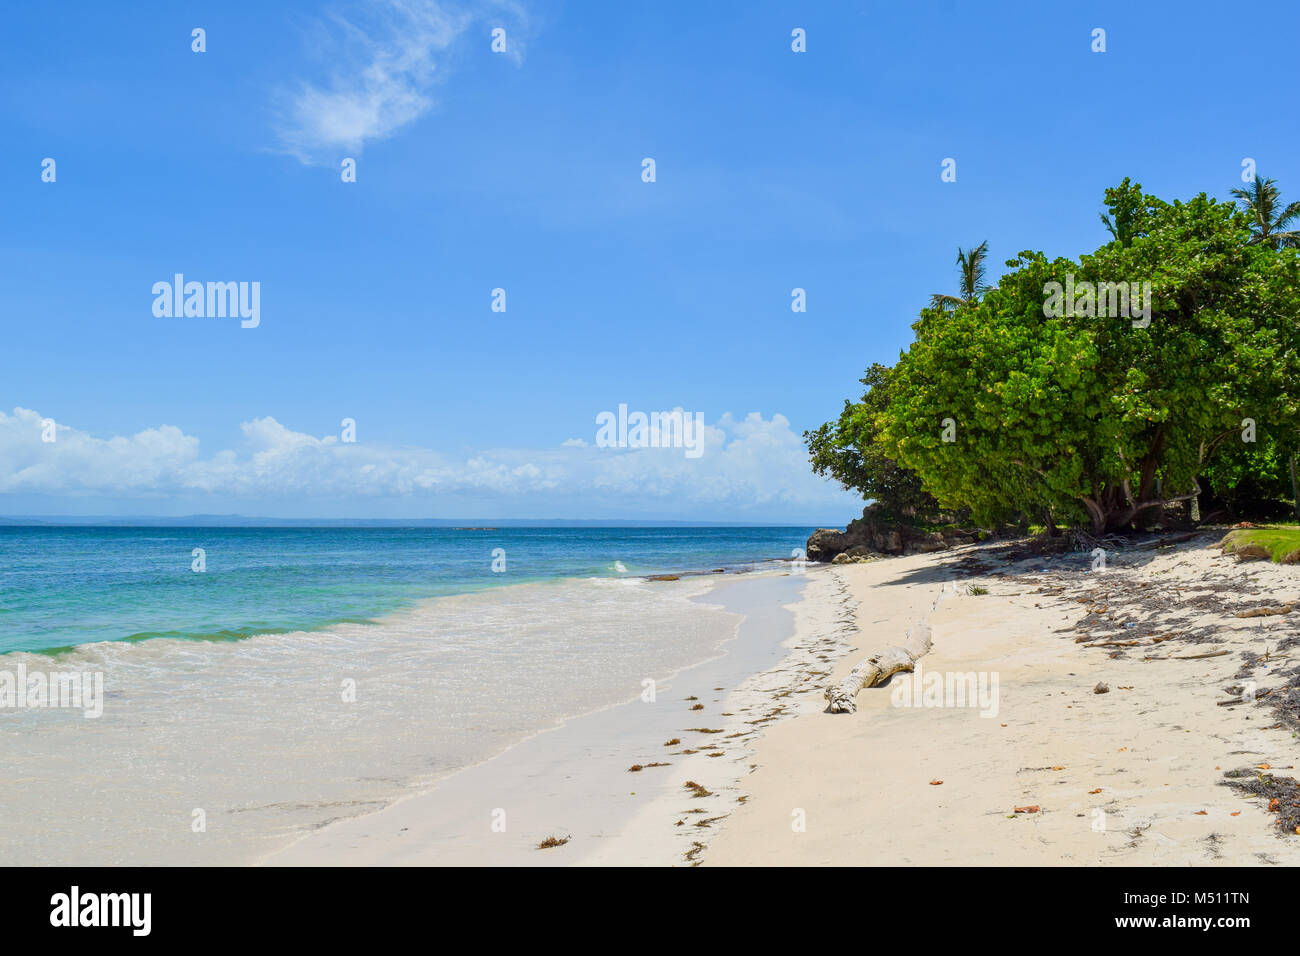 Beautiful beach with blue sky and turquoise water, Dominican Republic, caribbean sea - Stock Image